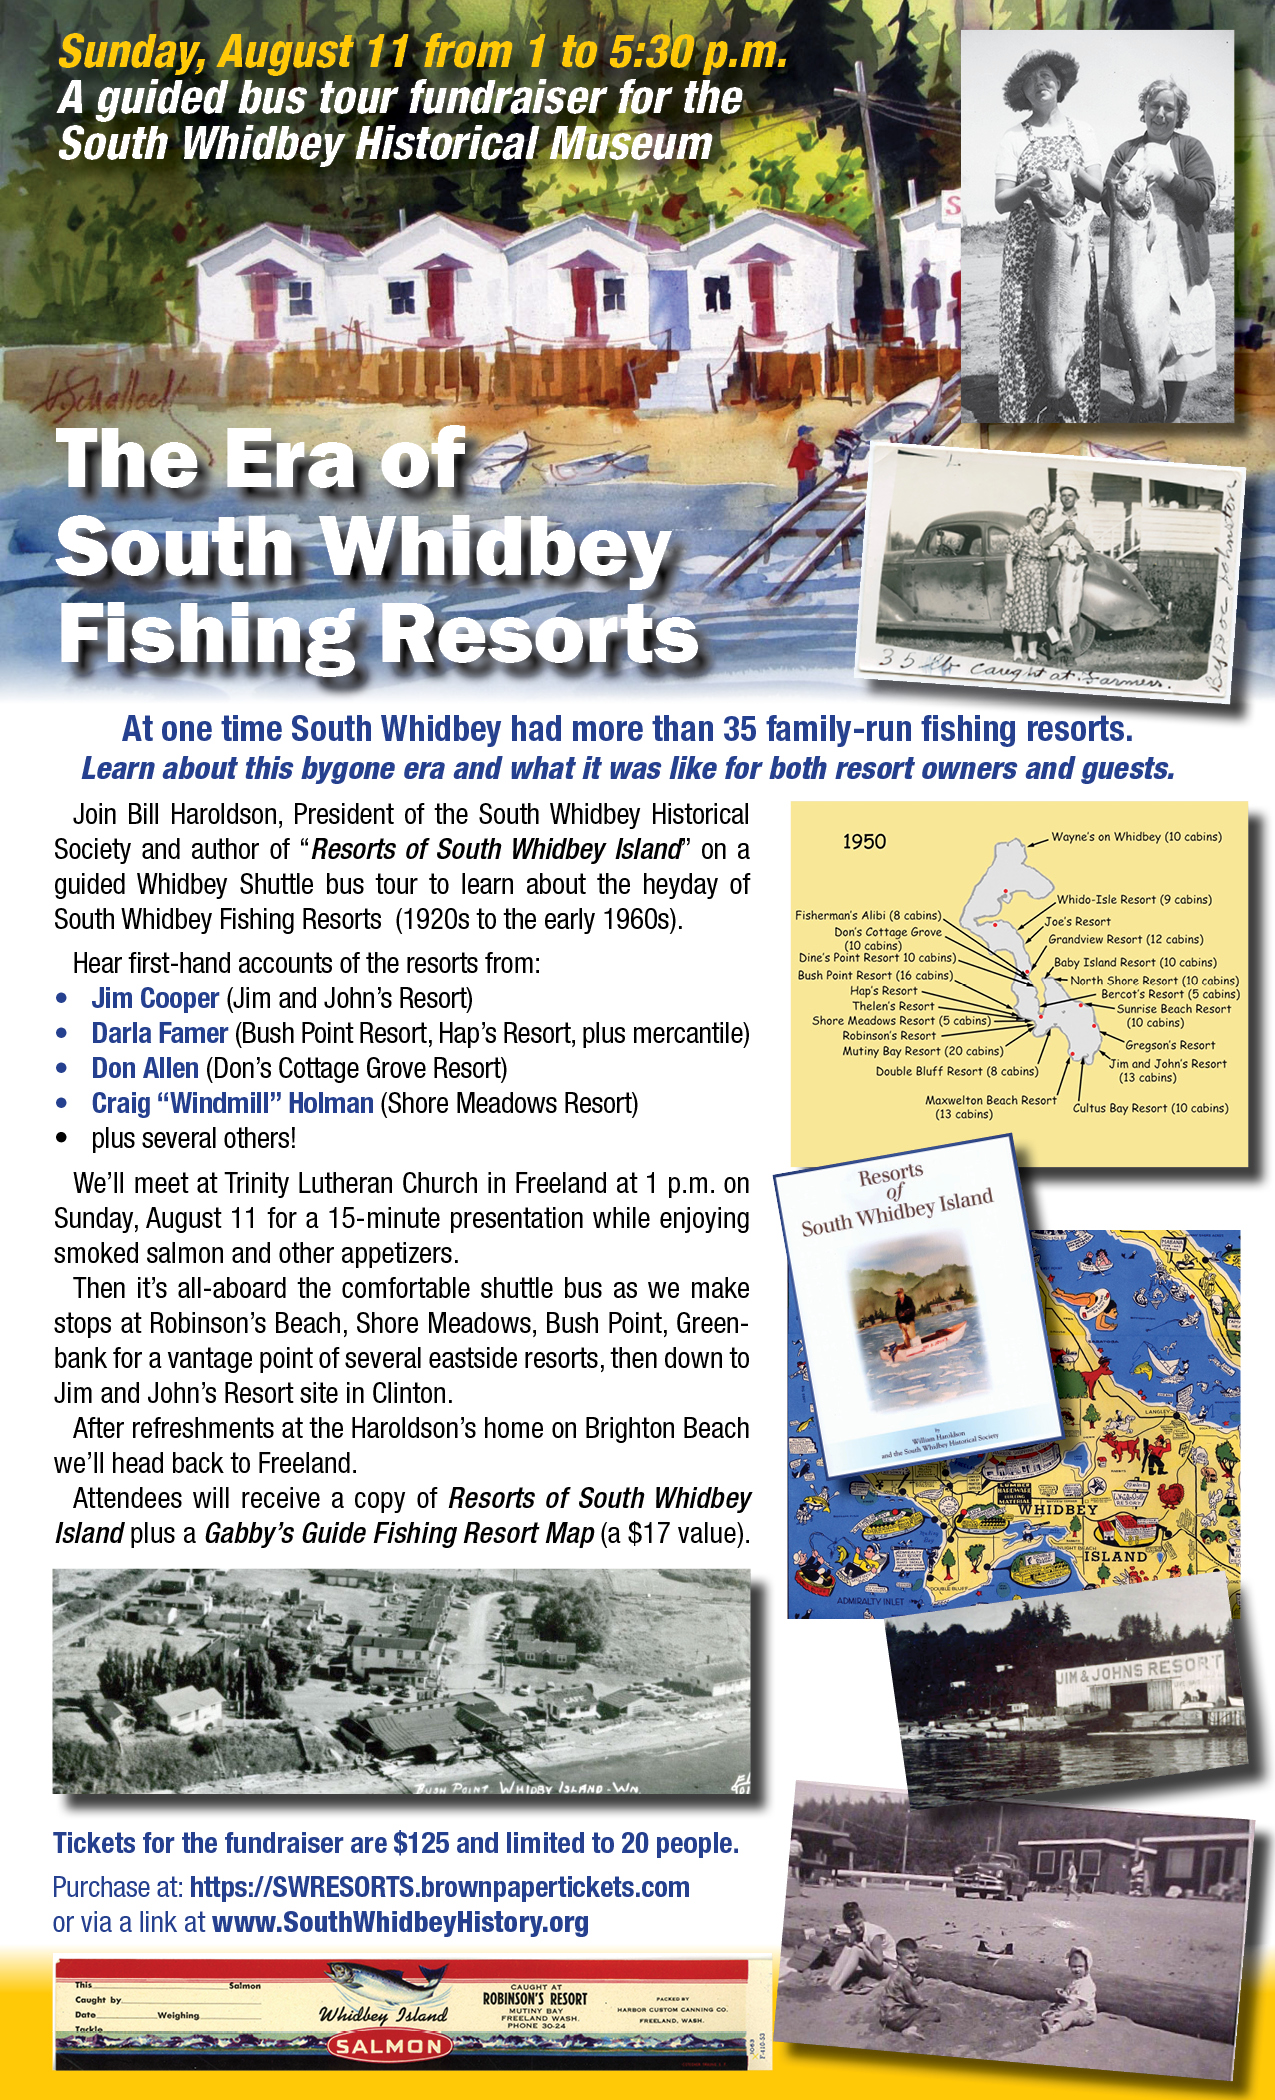 Buy your tickets now for the Era of Fishing Resorts on South Whidbey Fundraiser Bus Tour